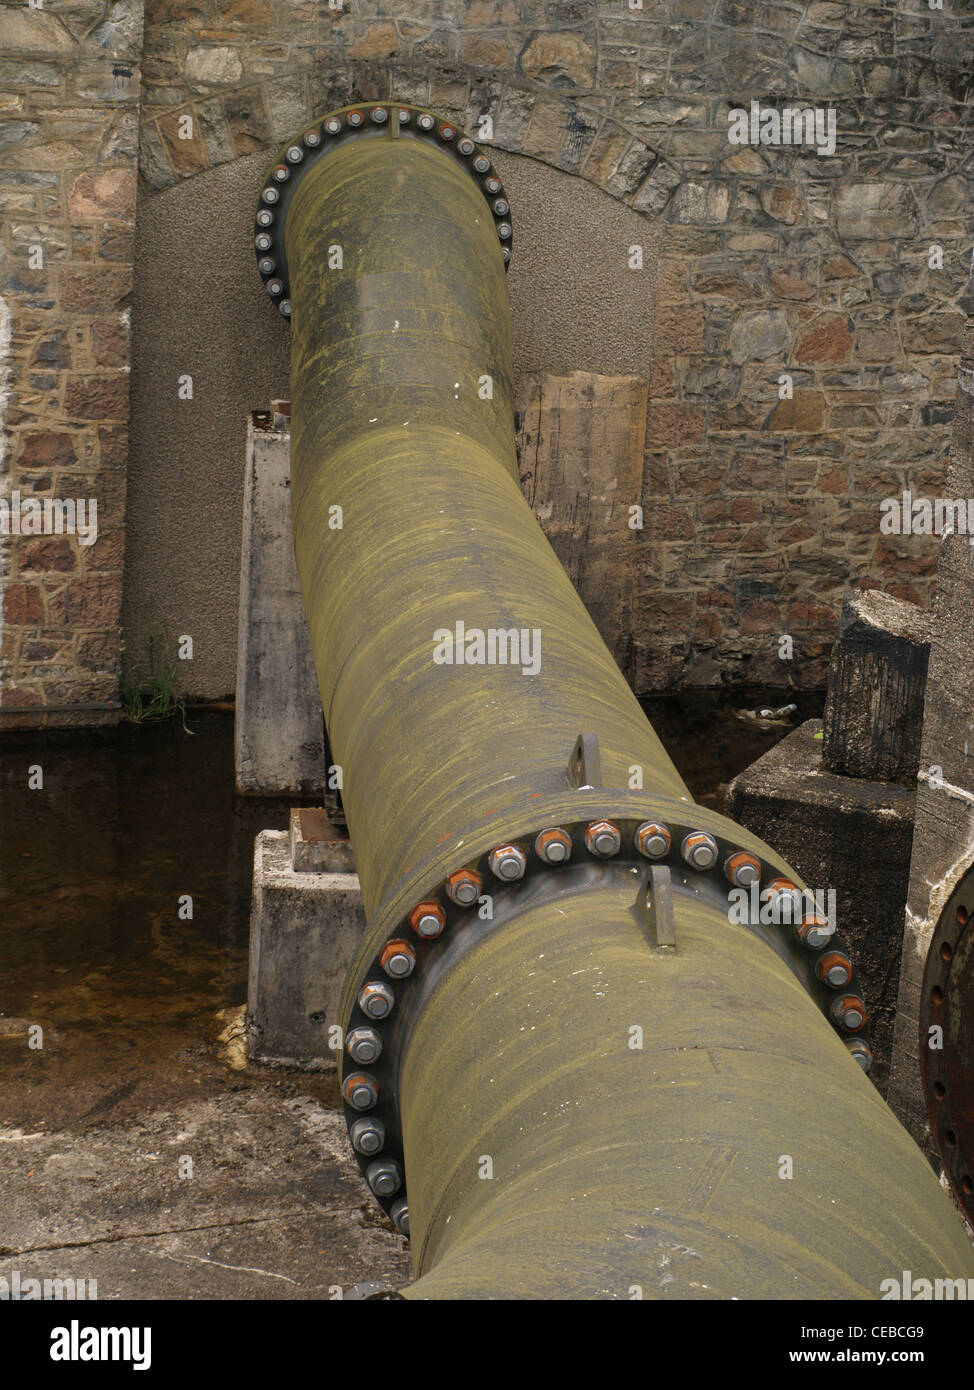 Nuts and bolts holding industrial water pipes together Stock Photo